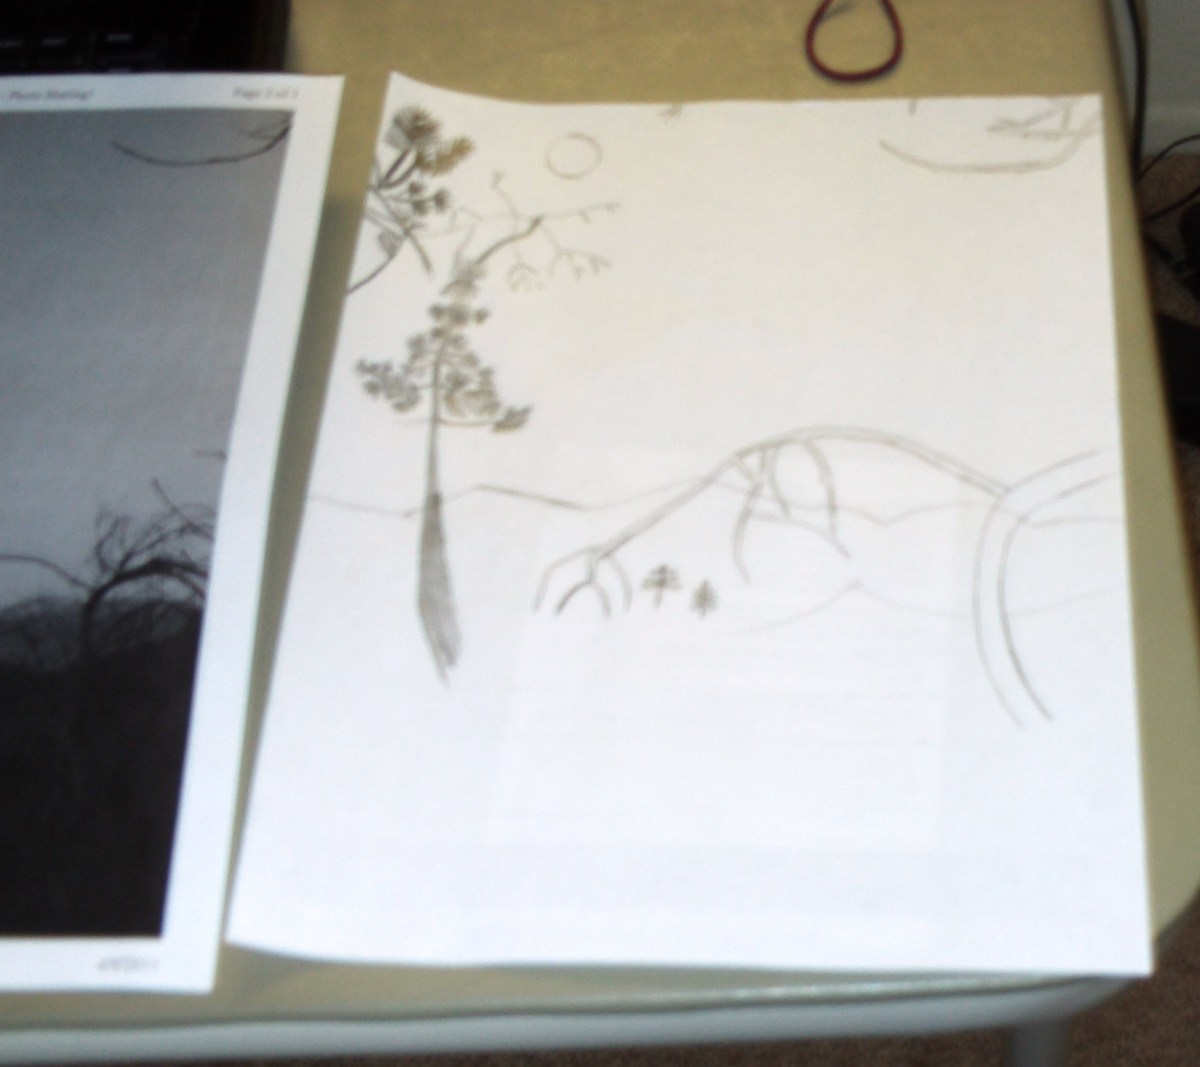 Here I used a print-out of a reference photograph as I sketched the forest scene.